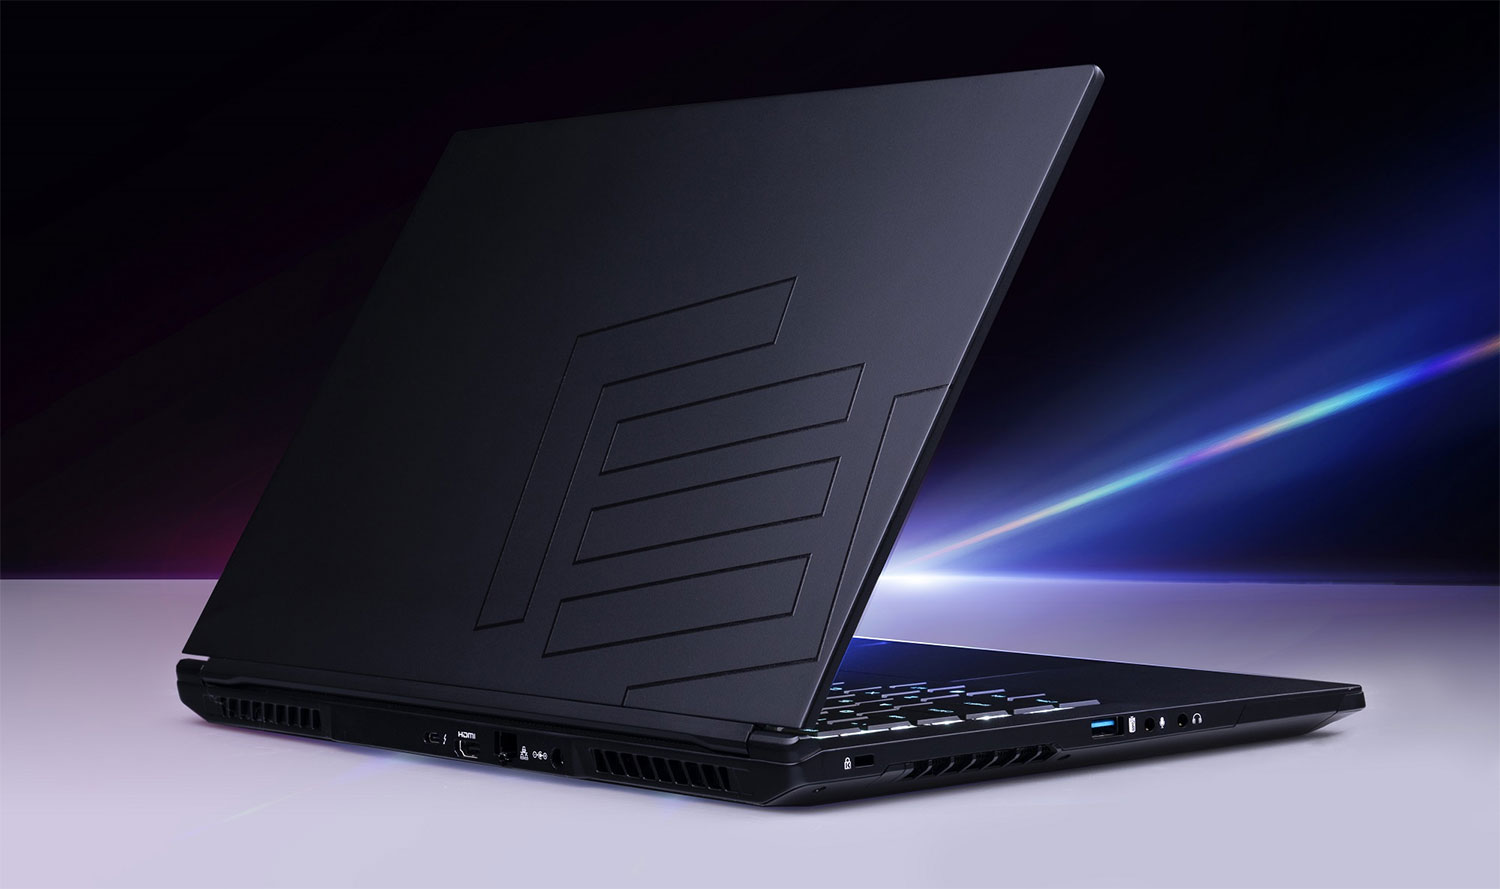 Maingear's fully loaded 'launch edition' Element laptop looks fantastic | PC Gamer